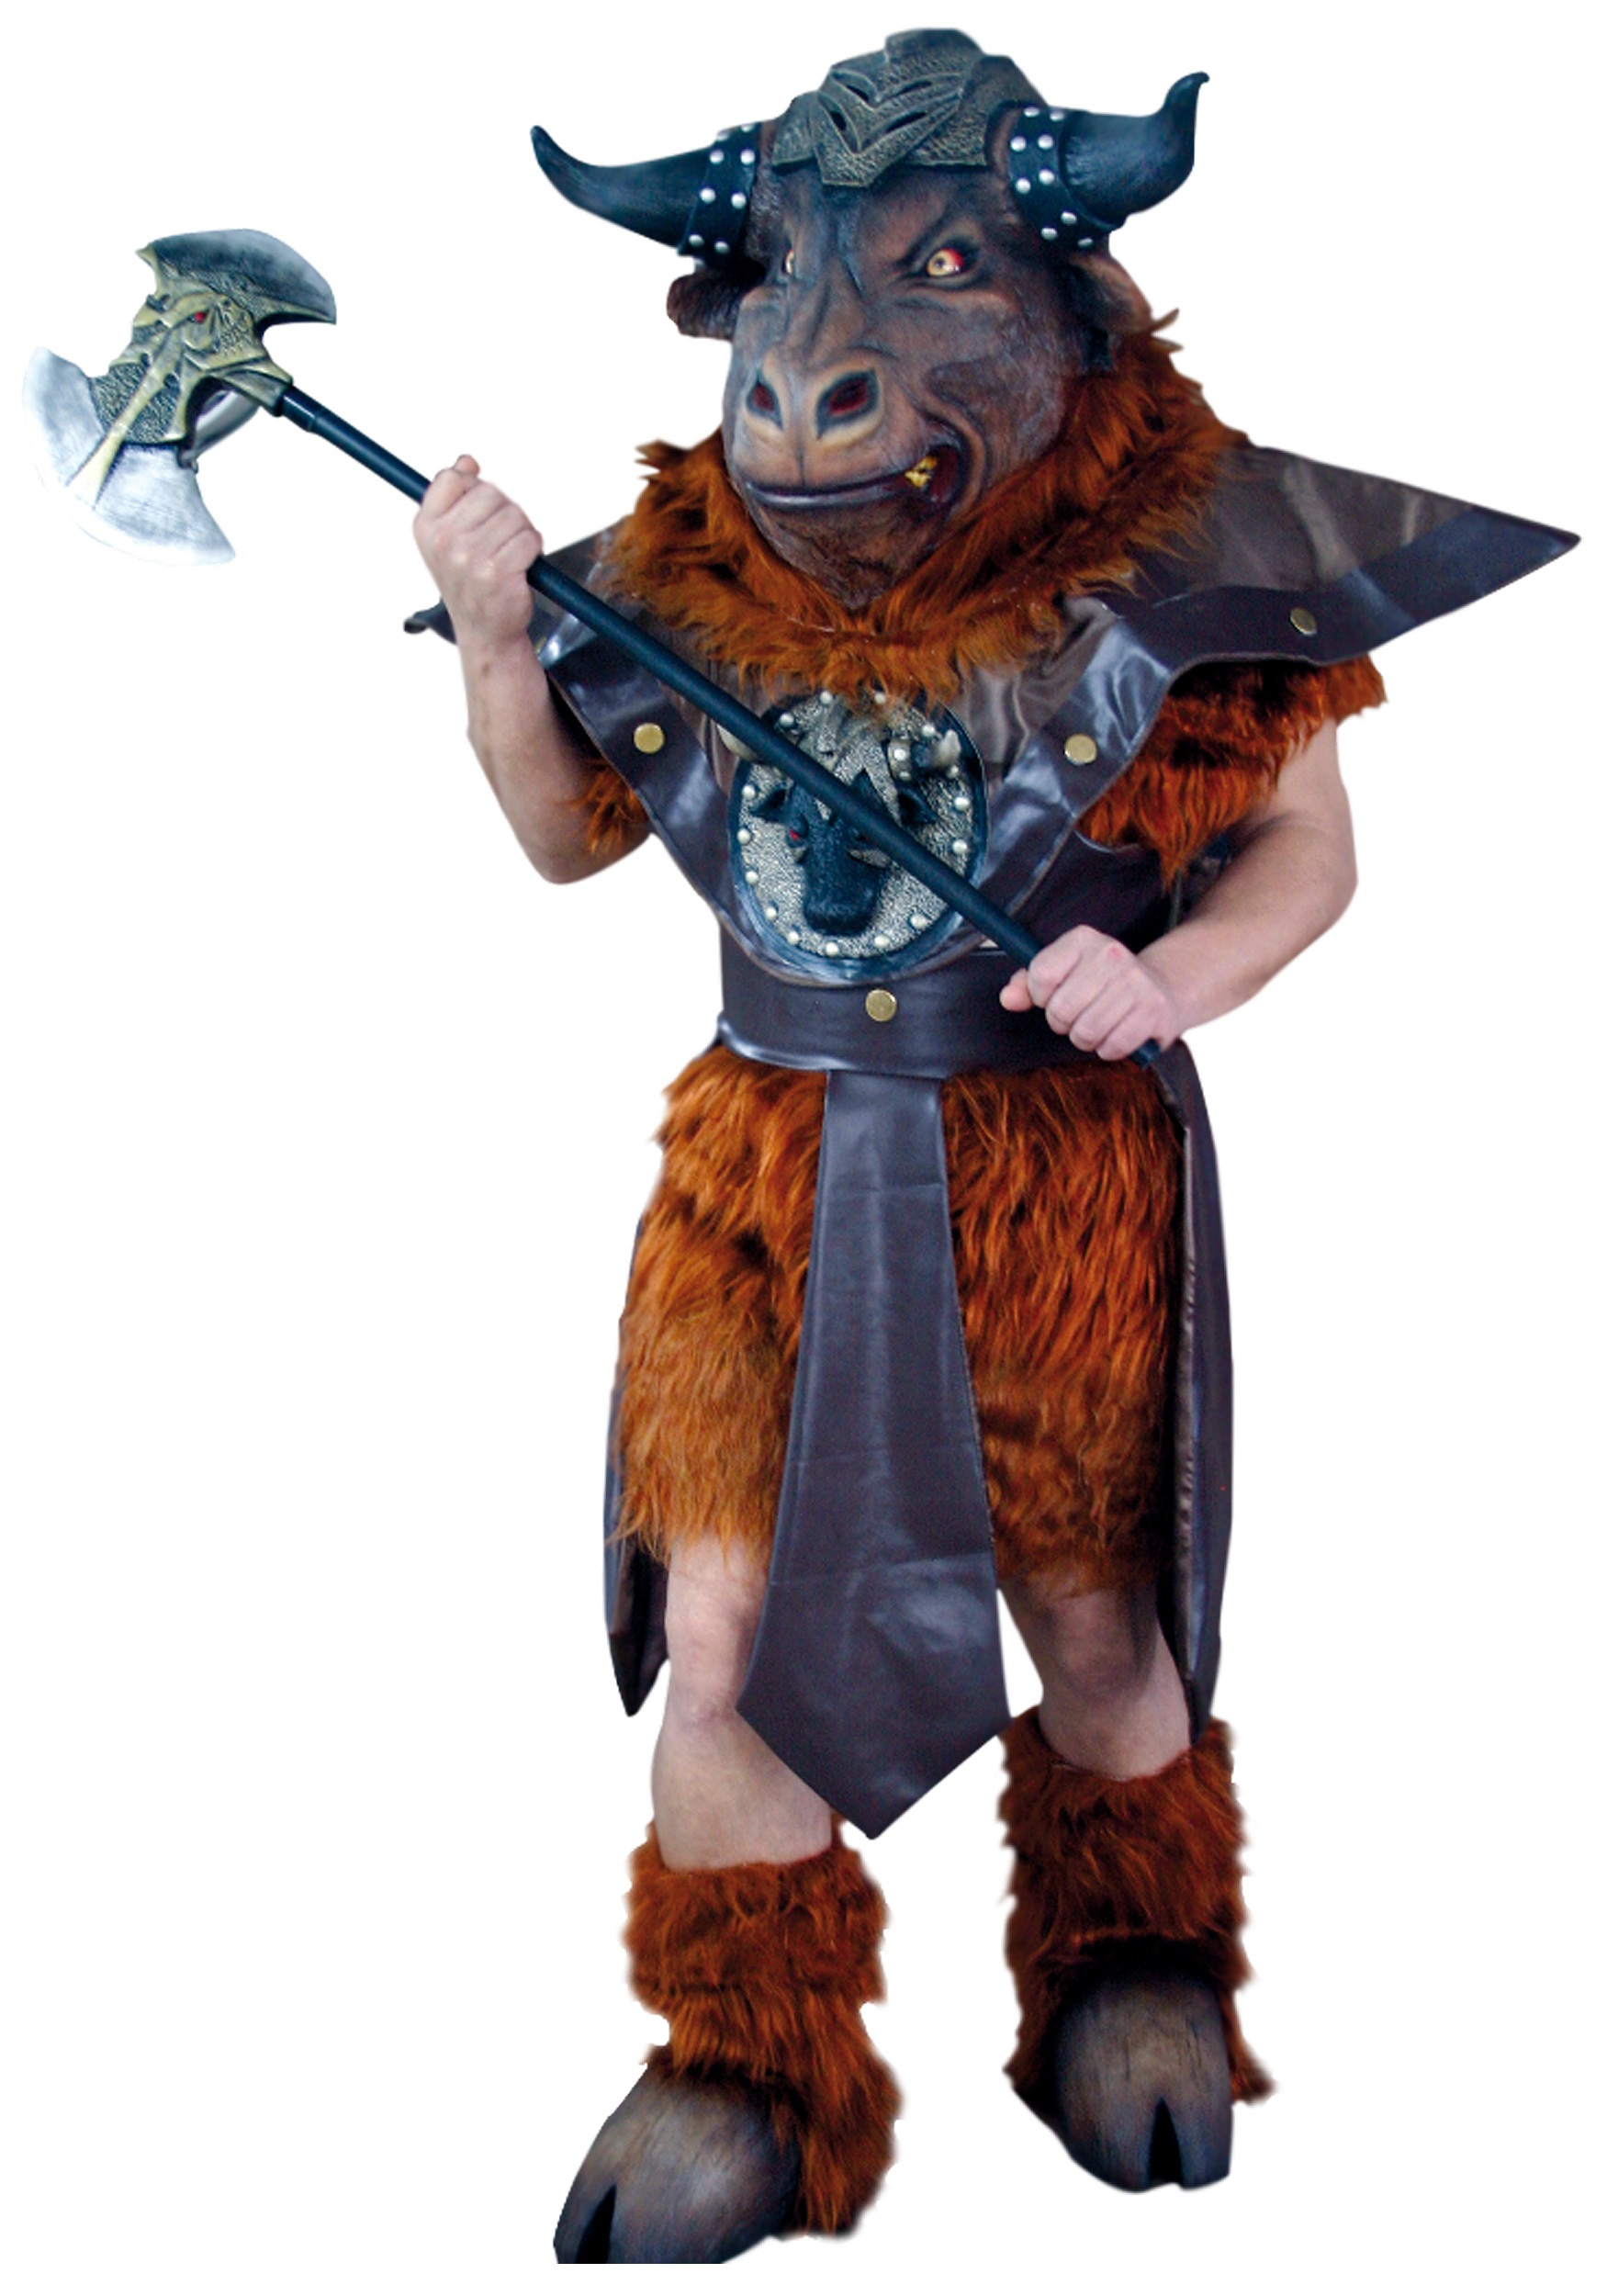 World of Warcraft Costumes - Adult Video Game Costume Ideas